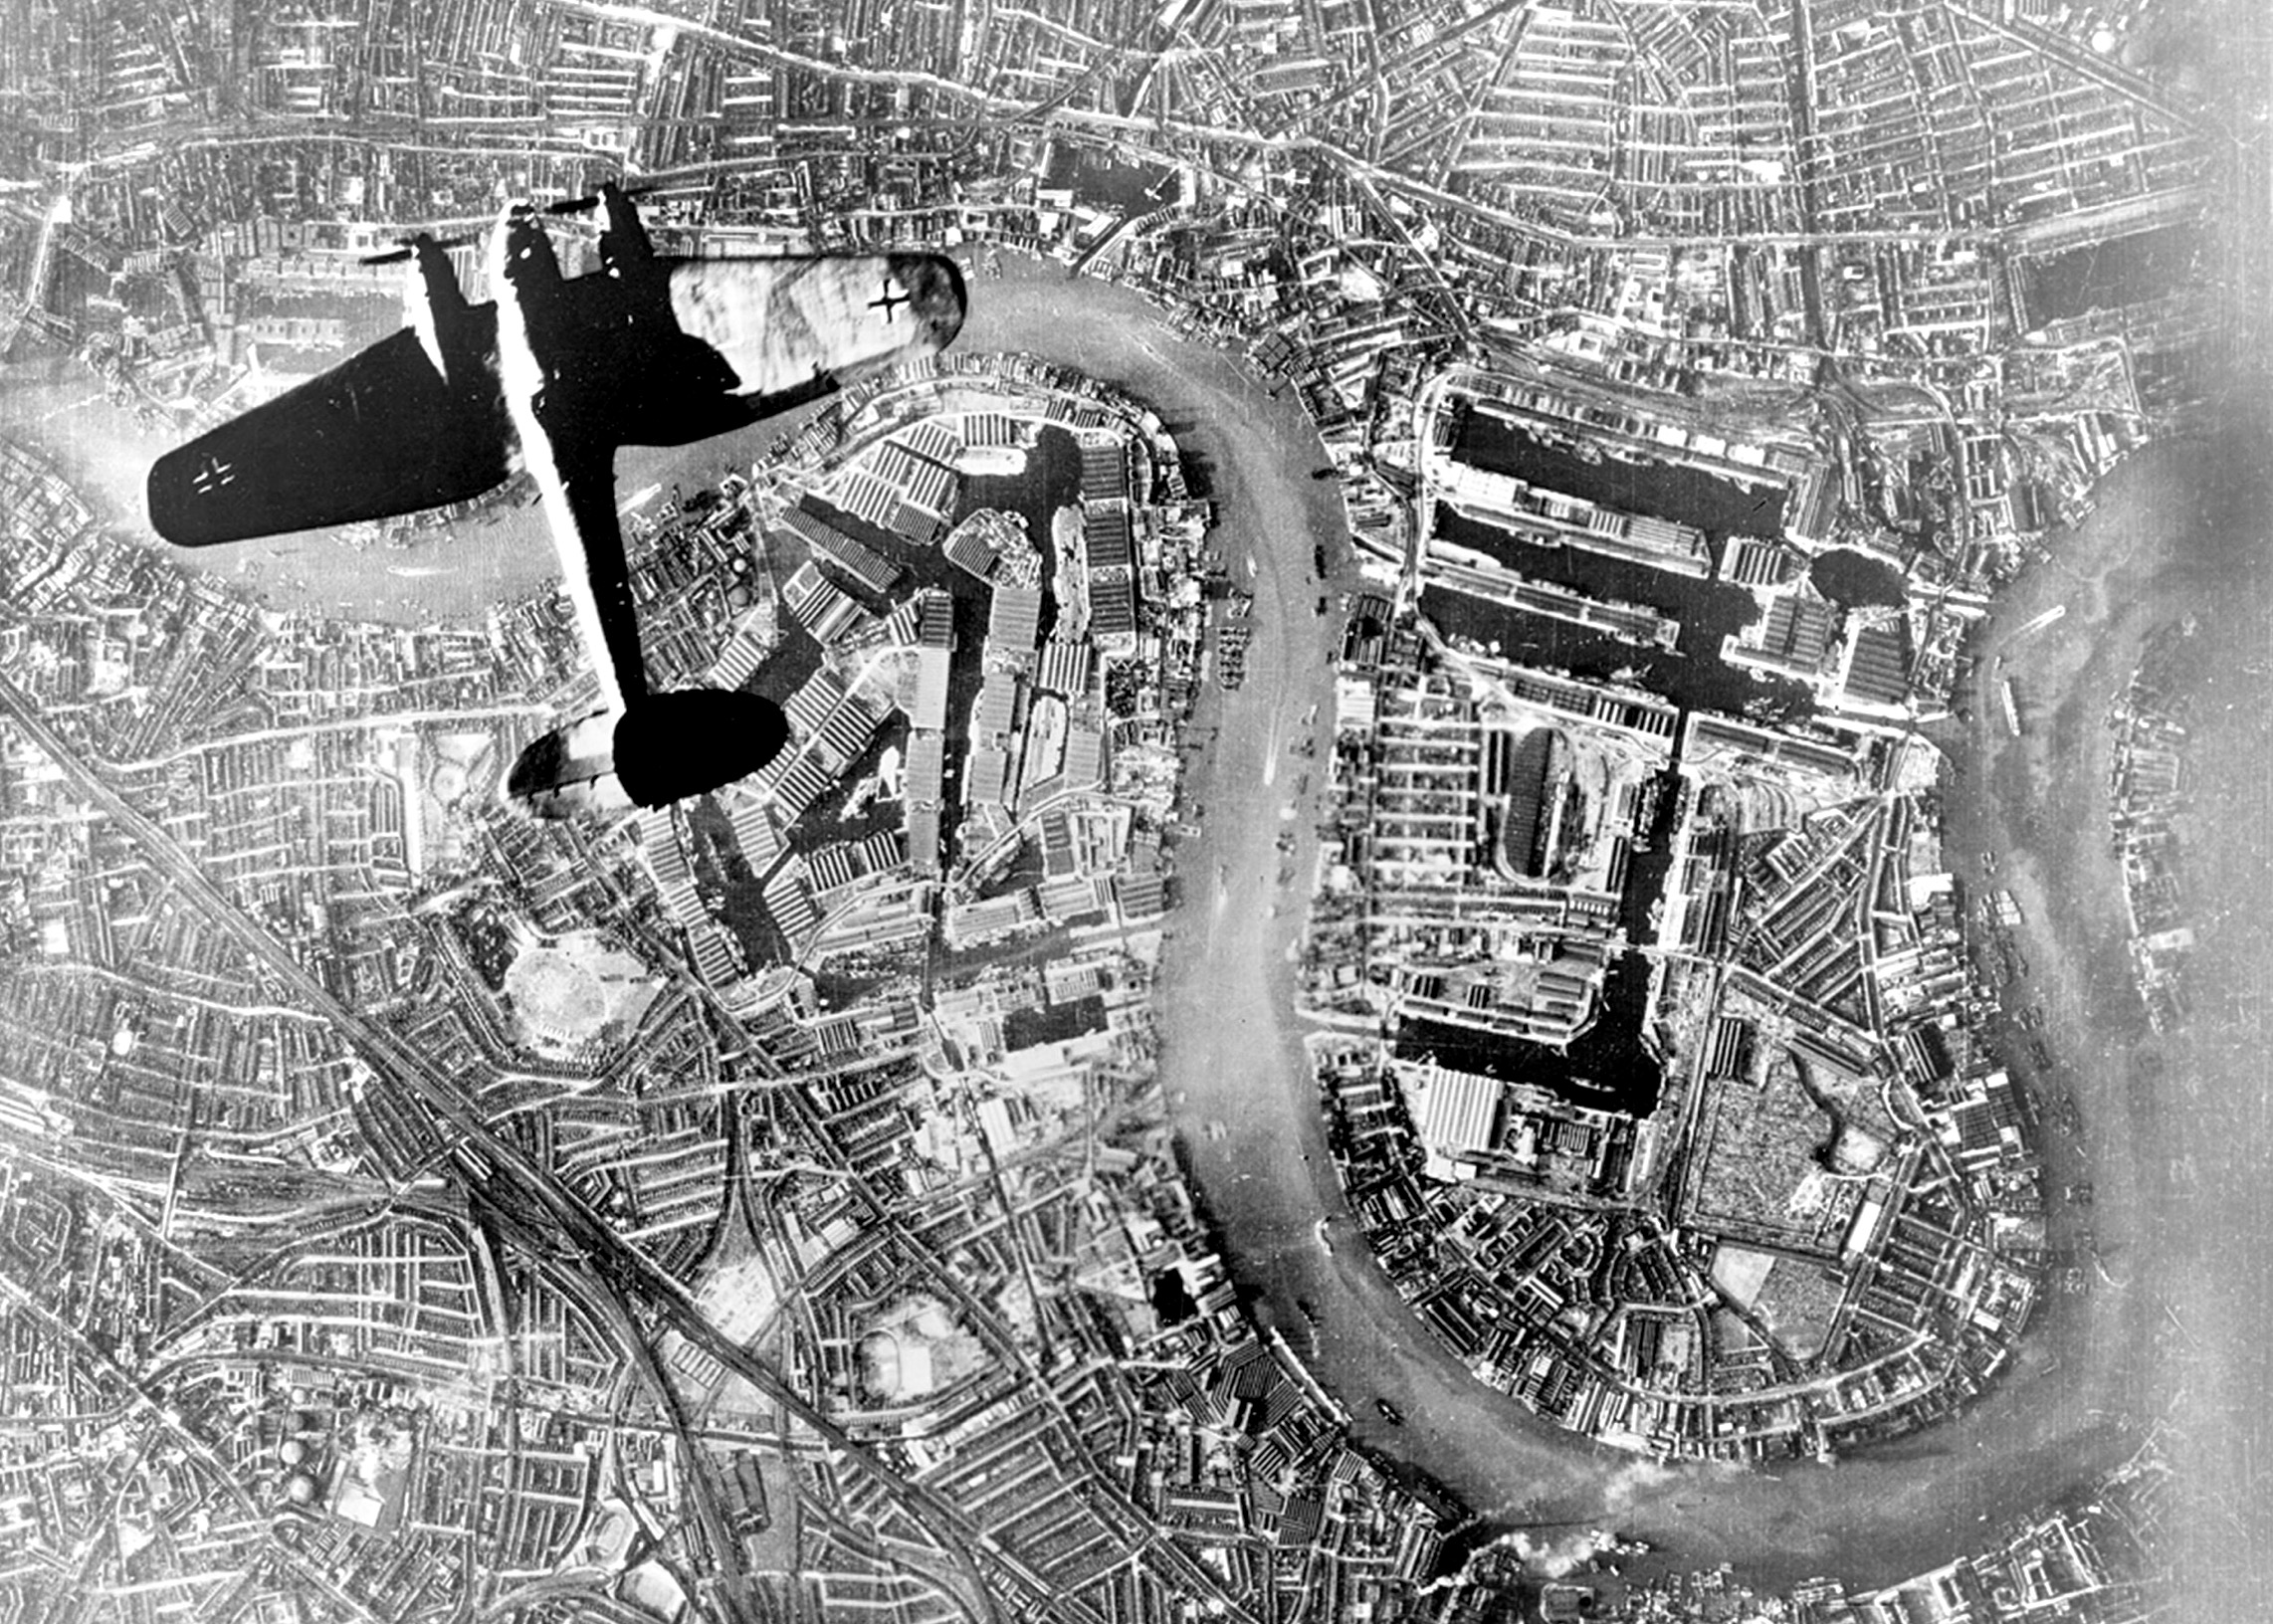 A Heinkel He 111 bomber high above Rotherhithe/Wapping on 7th September 1940